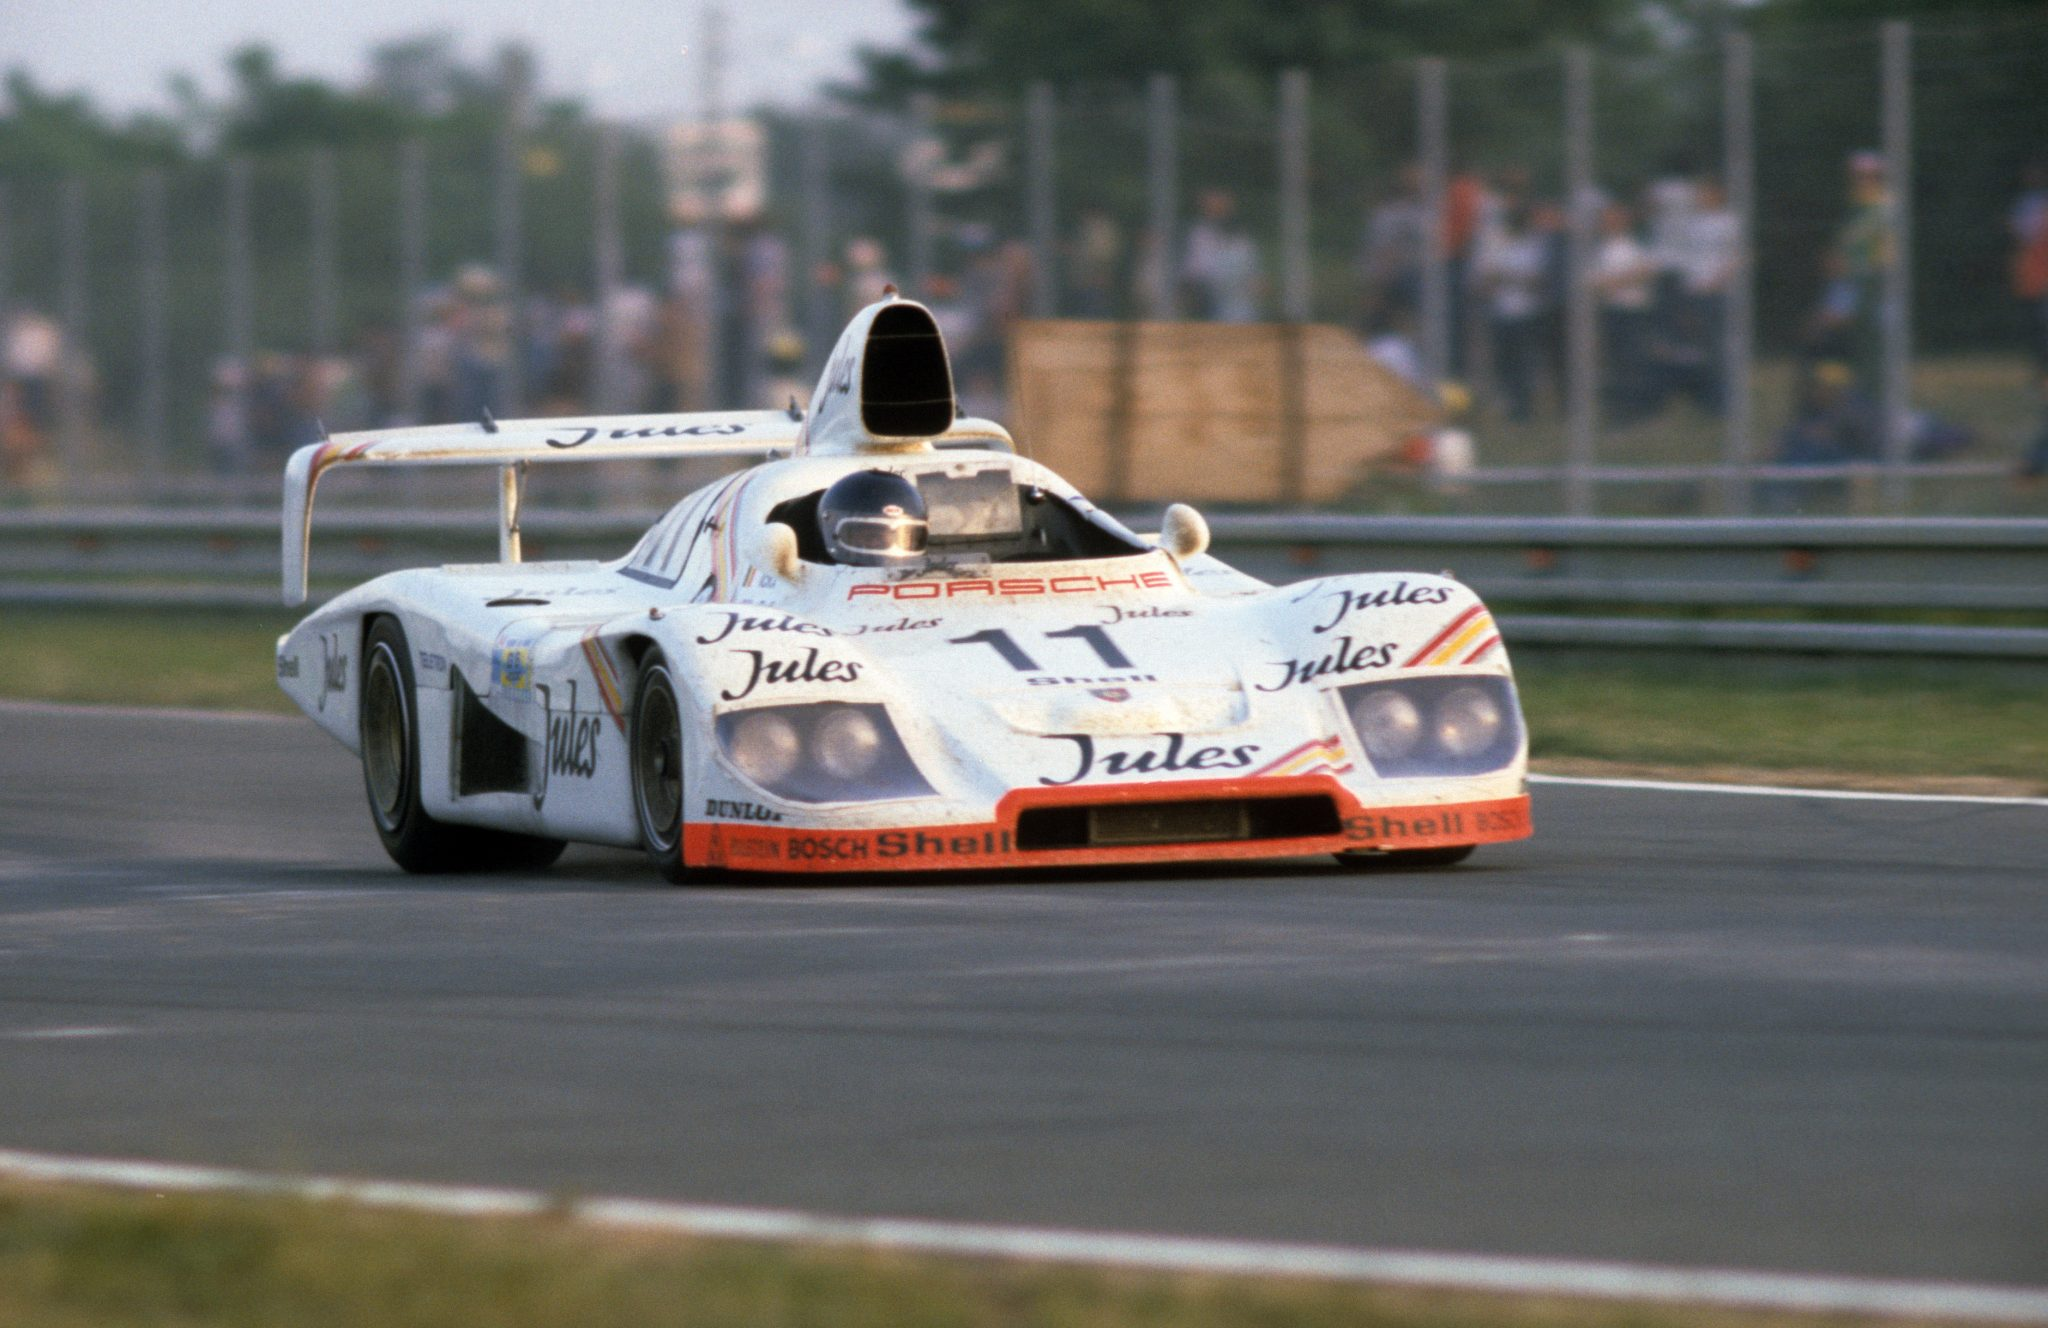 Legendary Racer Jacky Ickx Gets Behind The Wheel Of Both The 956 And 936 At The Porsche